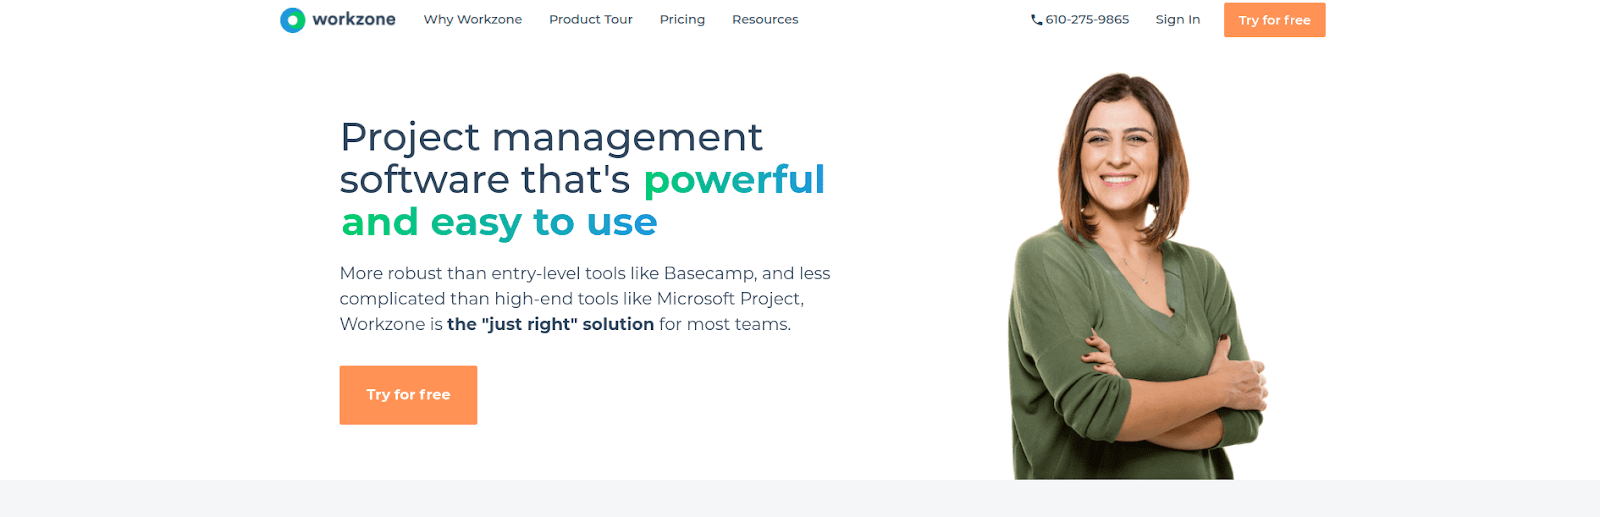 Workzone Project Management Software